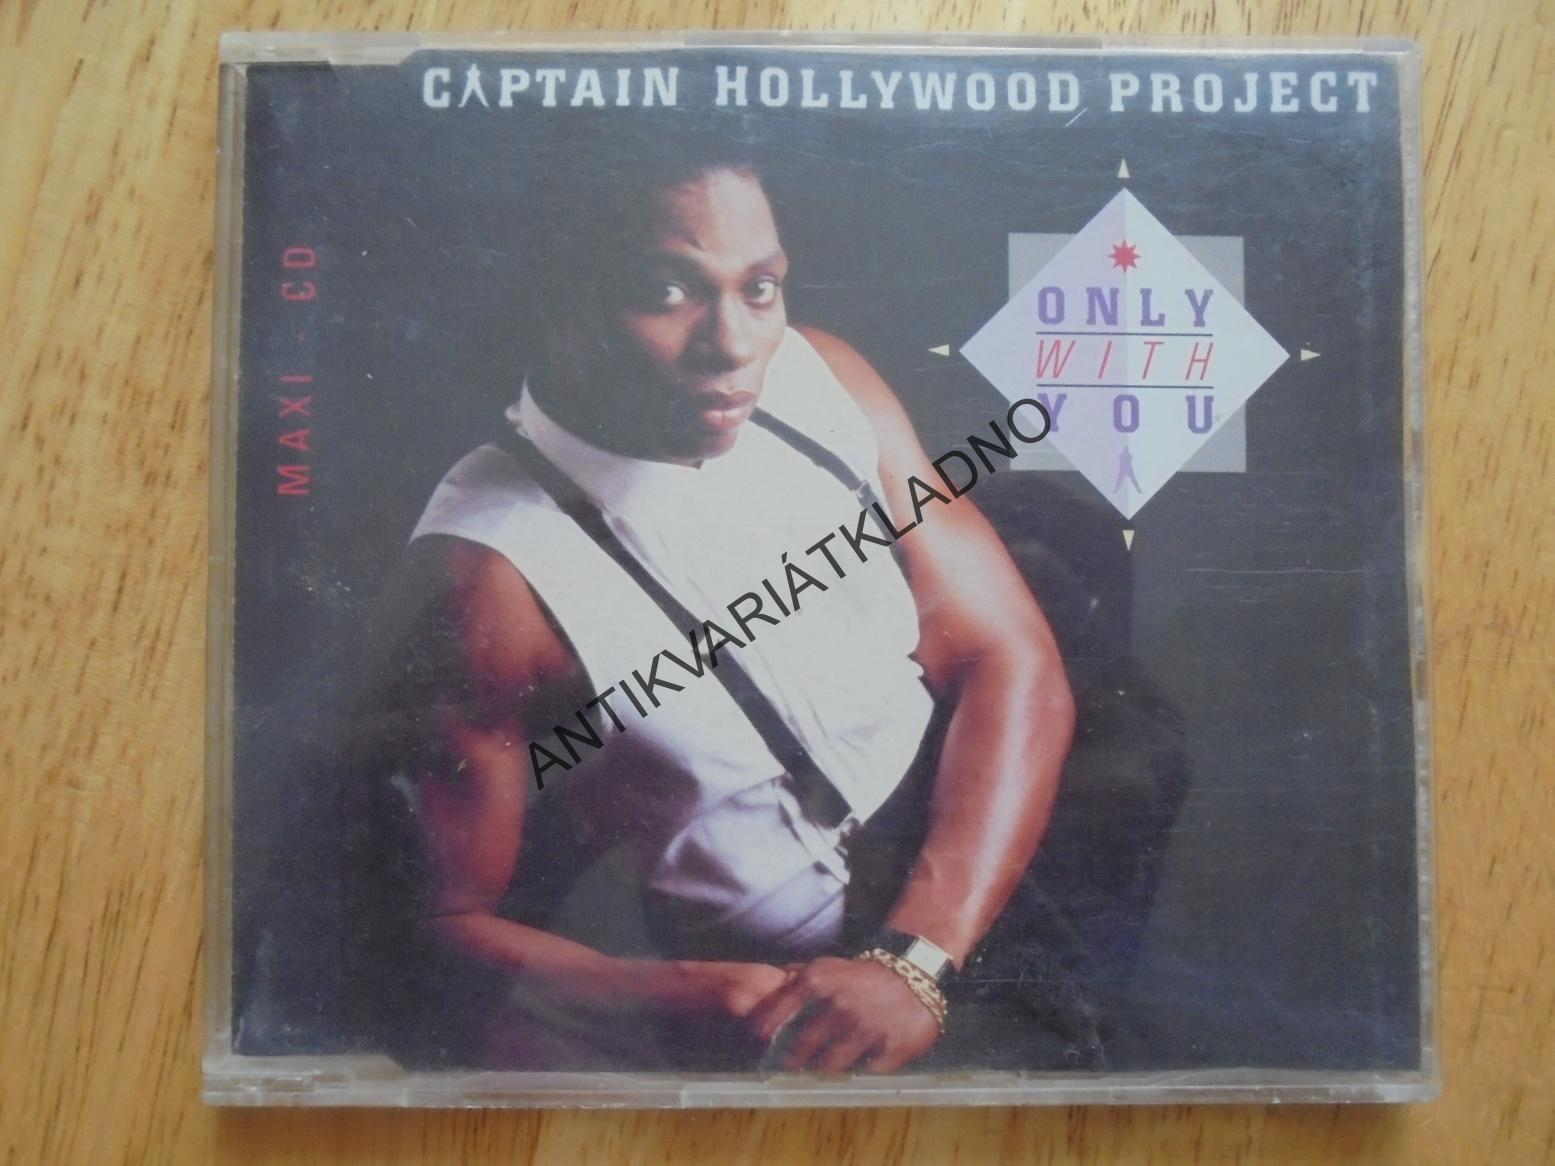 CAPTAIN HOLLYWOOD PROJECT, ONLY WITH YOU, CD